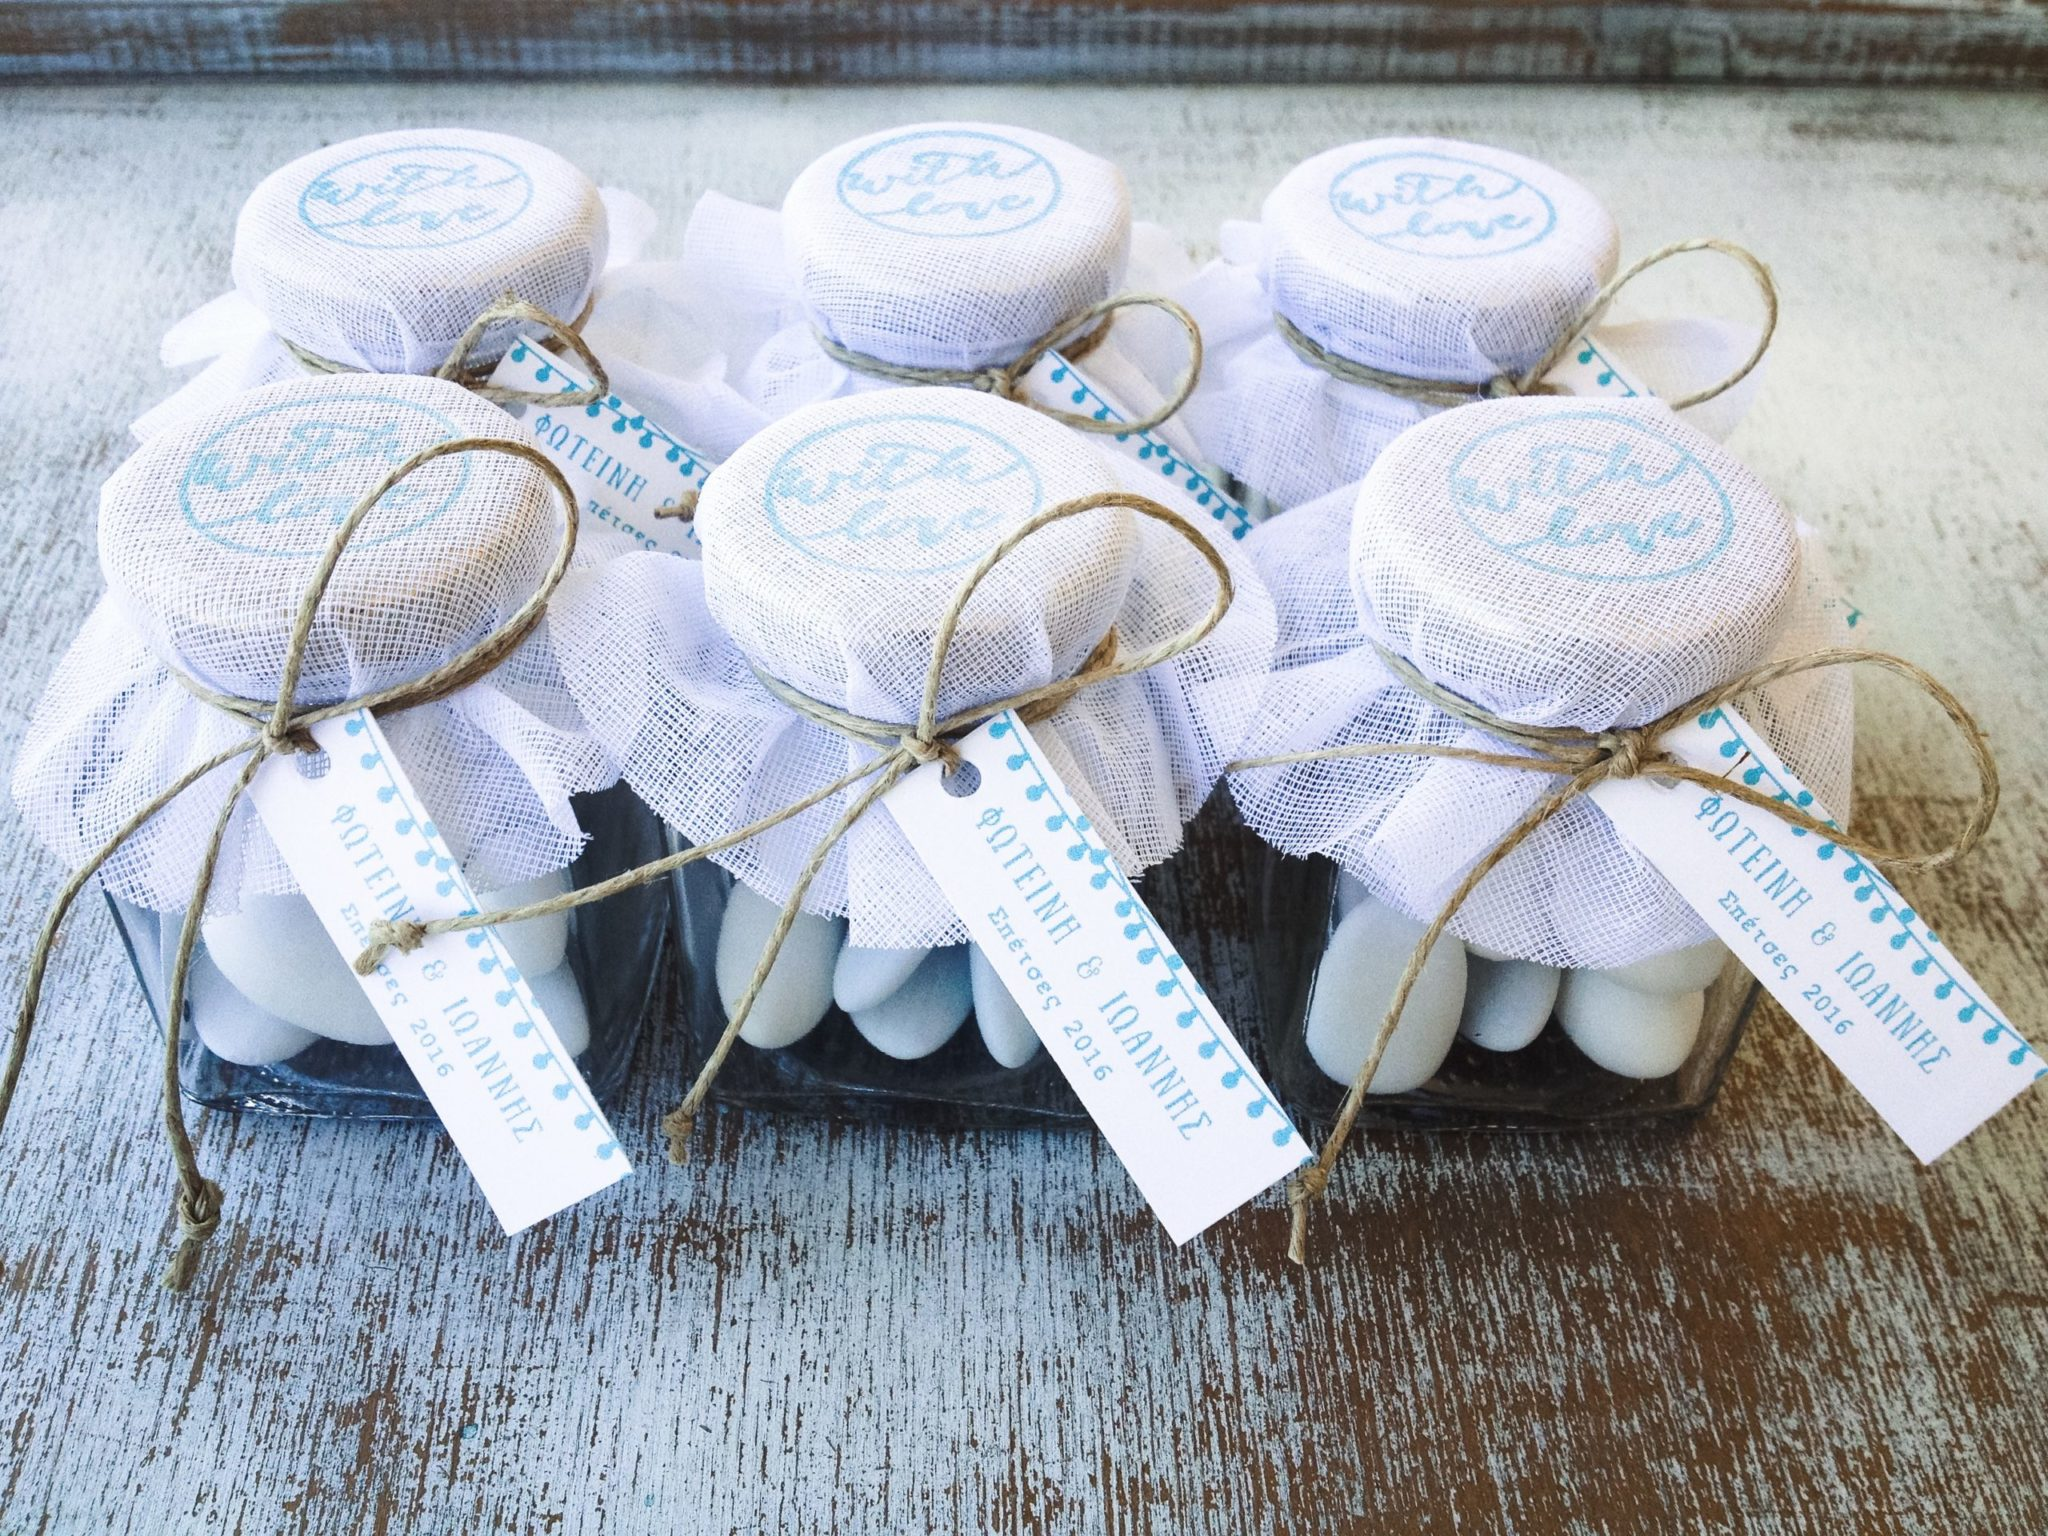 With Love-wedding favors-work in progress